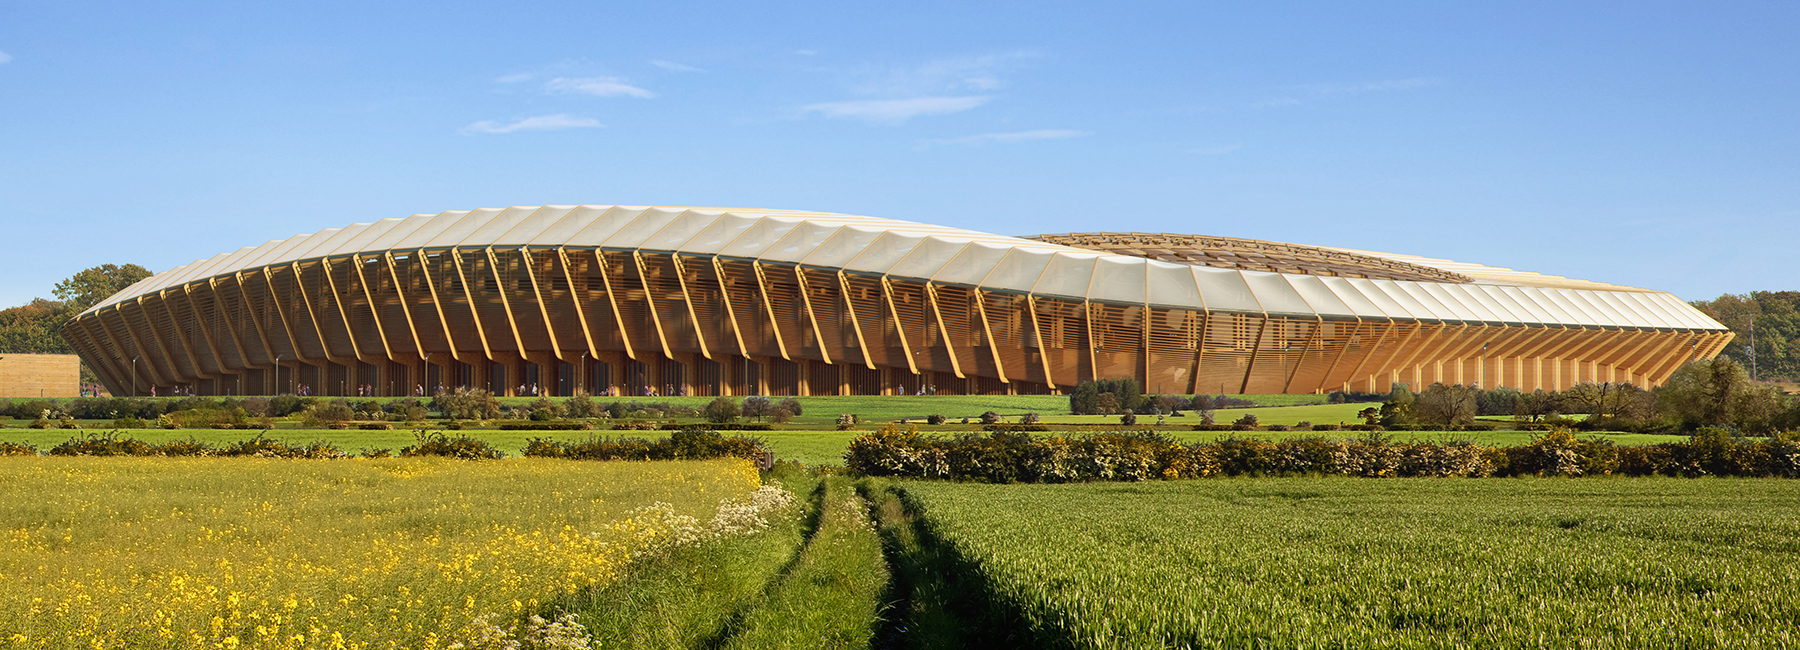 zaha-hadid-architects-forest-green-rovers-eco-park-stadium